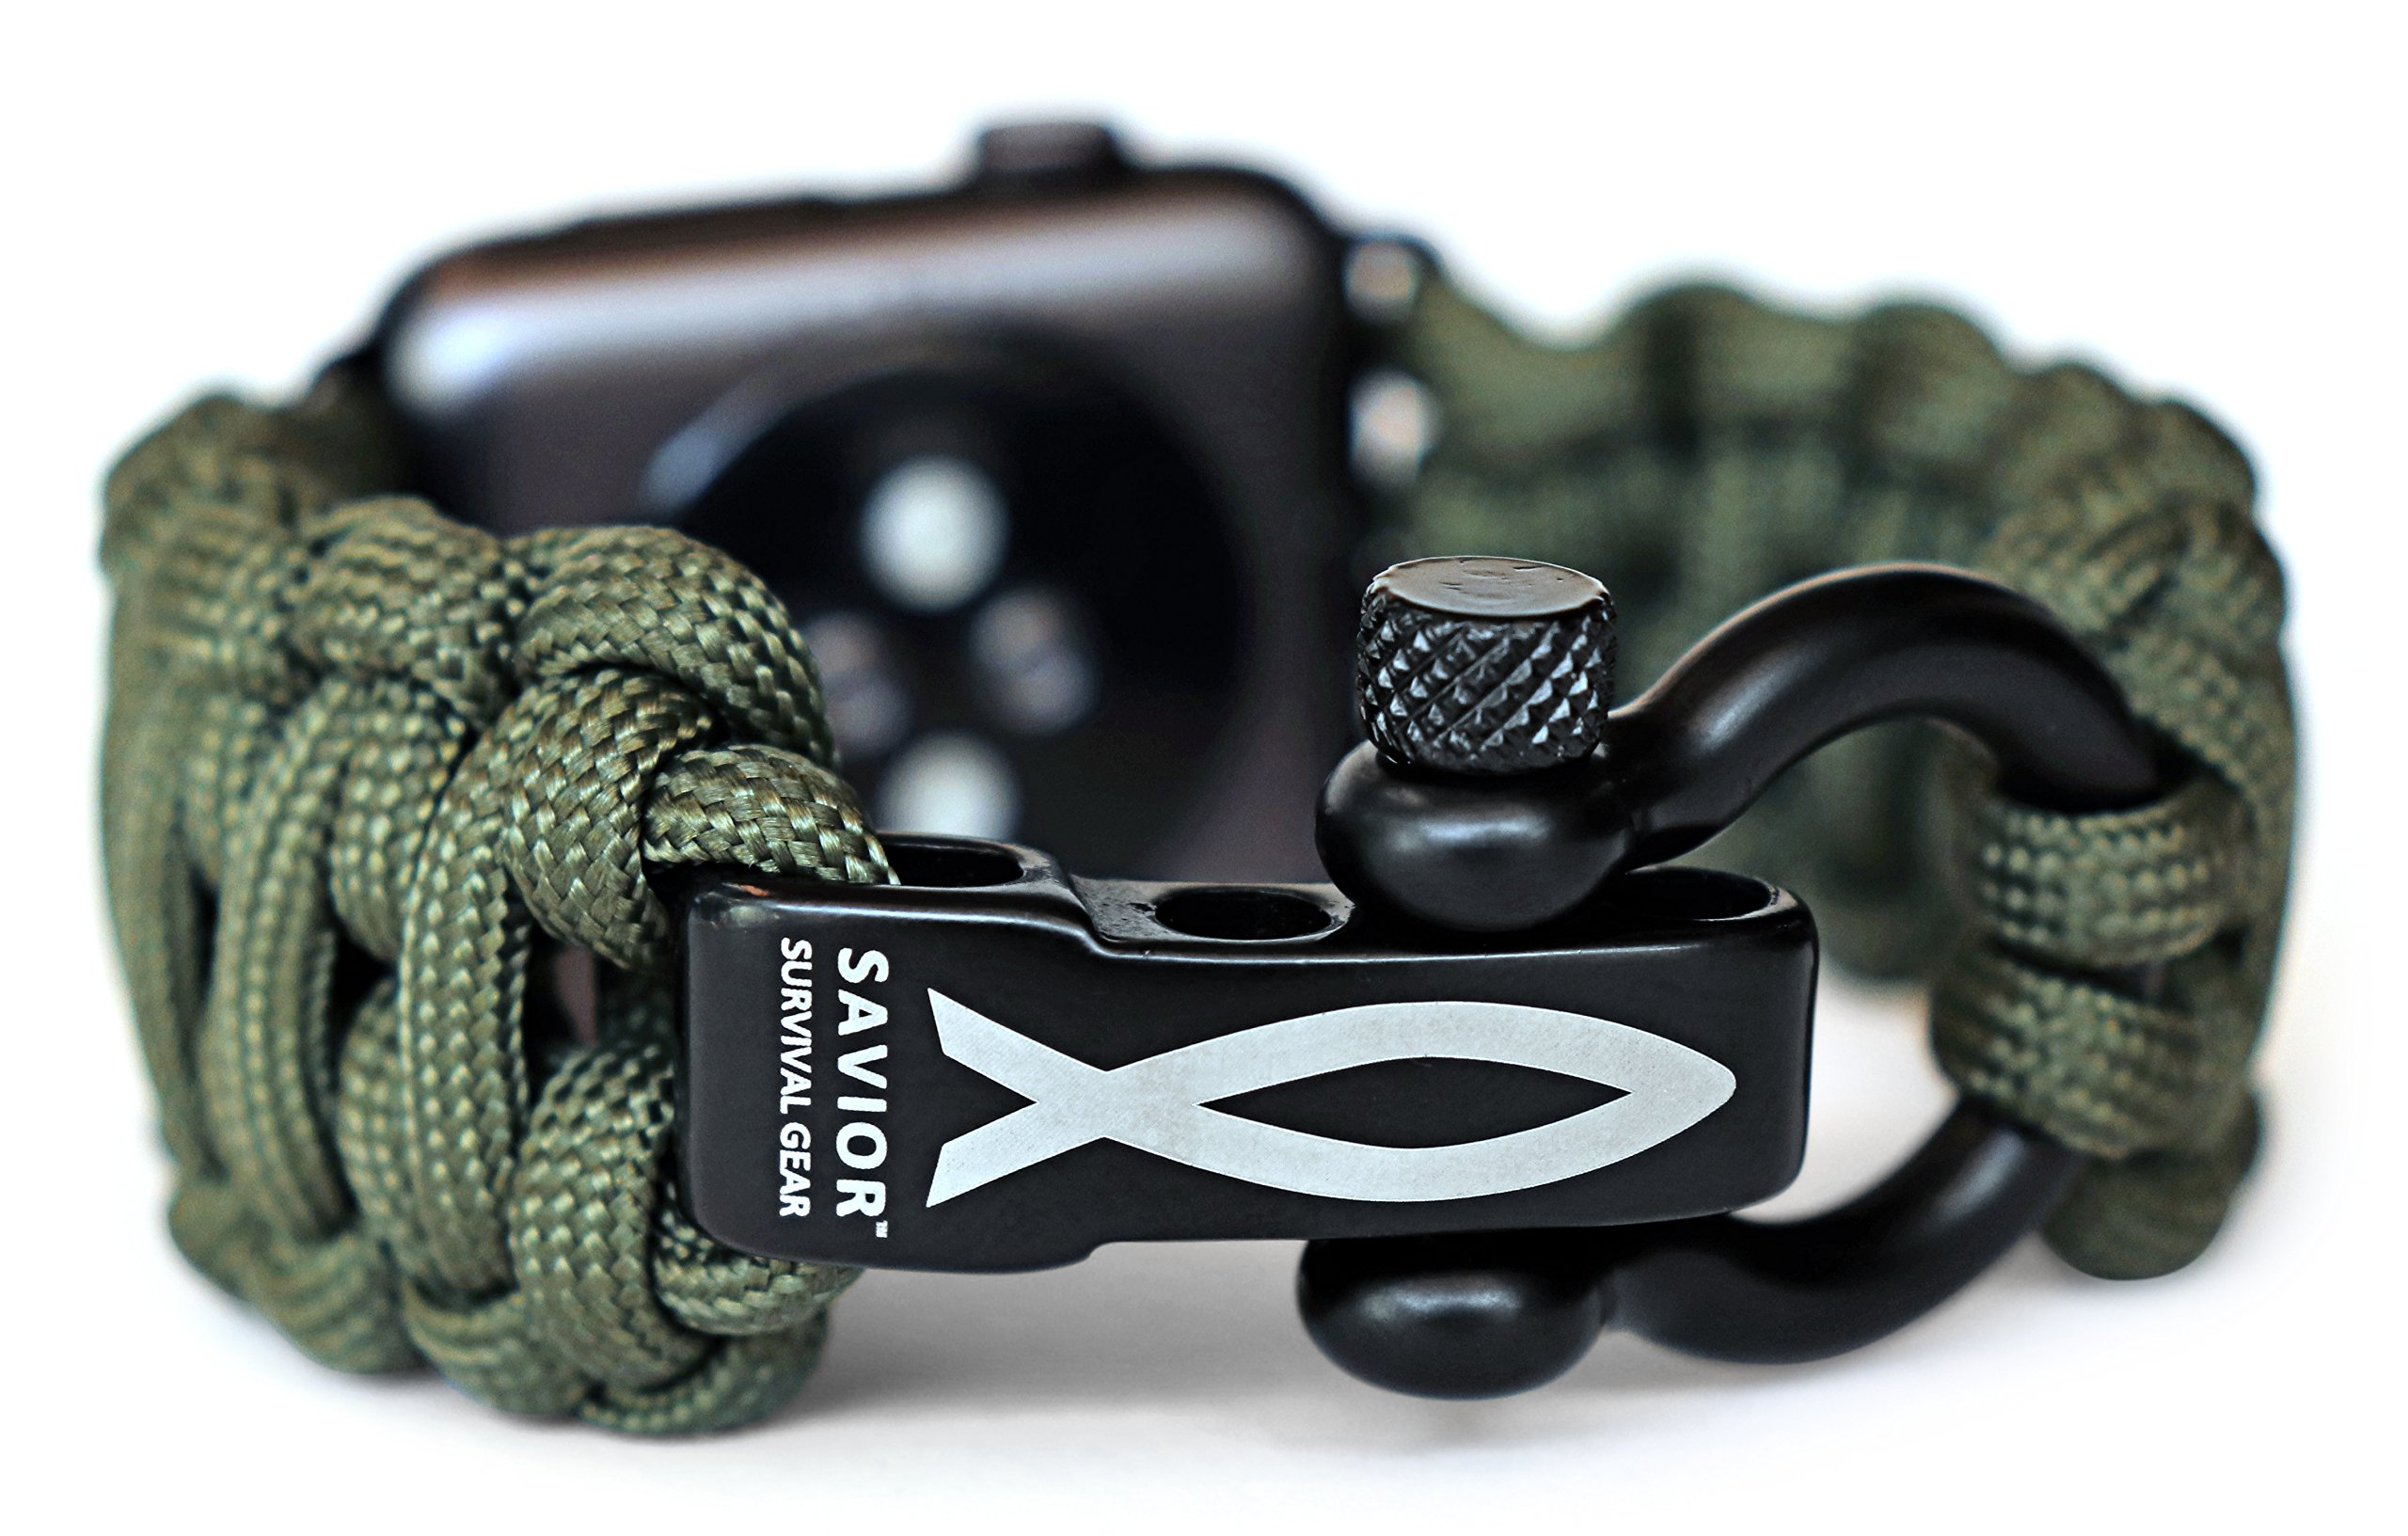 Savior Survival Gear Paracord Watch Band Compatible with Apple 42mm and 44mm Apple Watch - Paracord Watch Band with Stainless Steel Adjustable Shackle (550 Paracord, Green, Large) by Savior Survival Gear